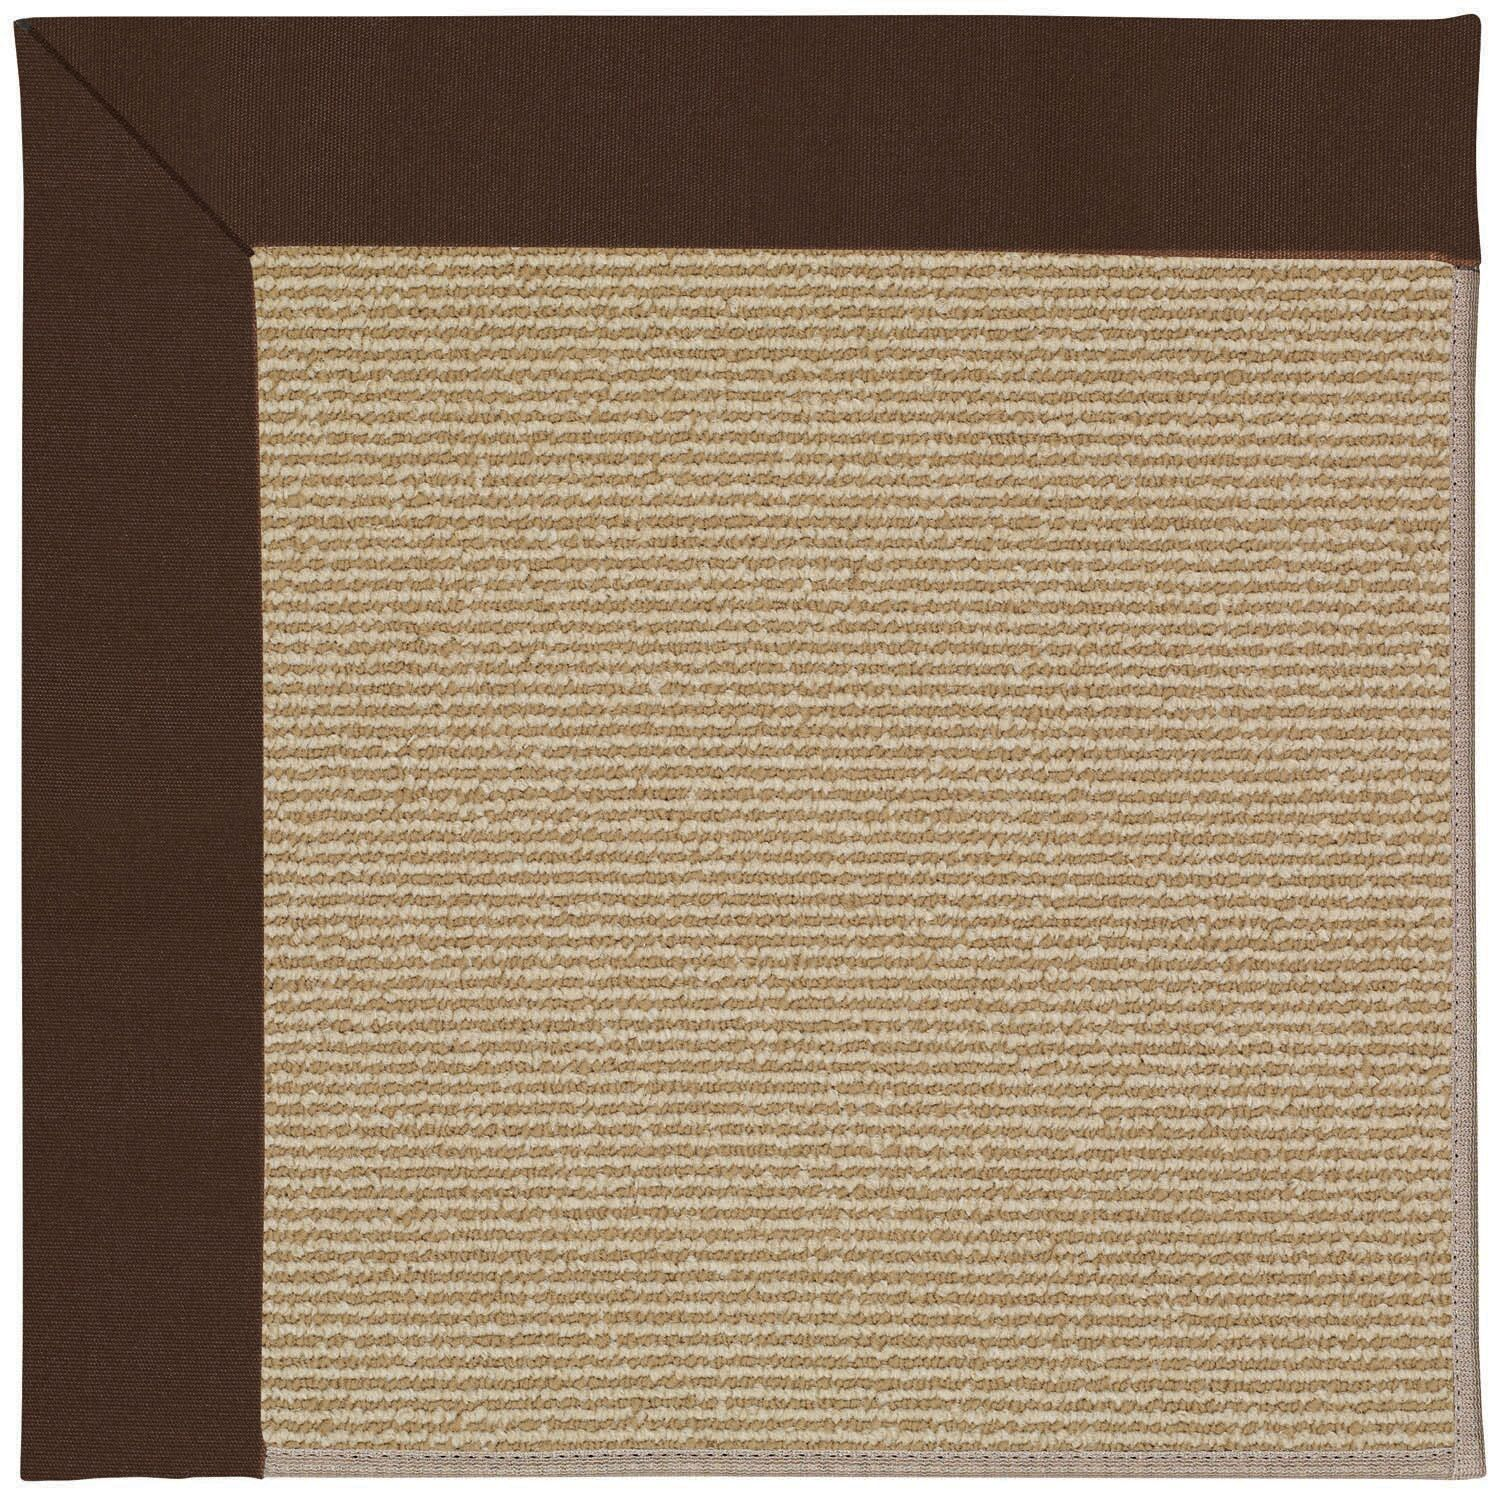 Lisle Machine Tufted Brown and Beige Indoor/Outdoor Area Rug Rug Size: Rectangle 8' x 10'